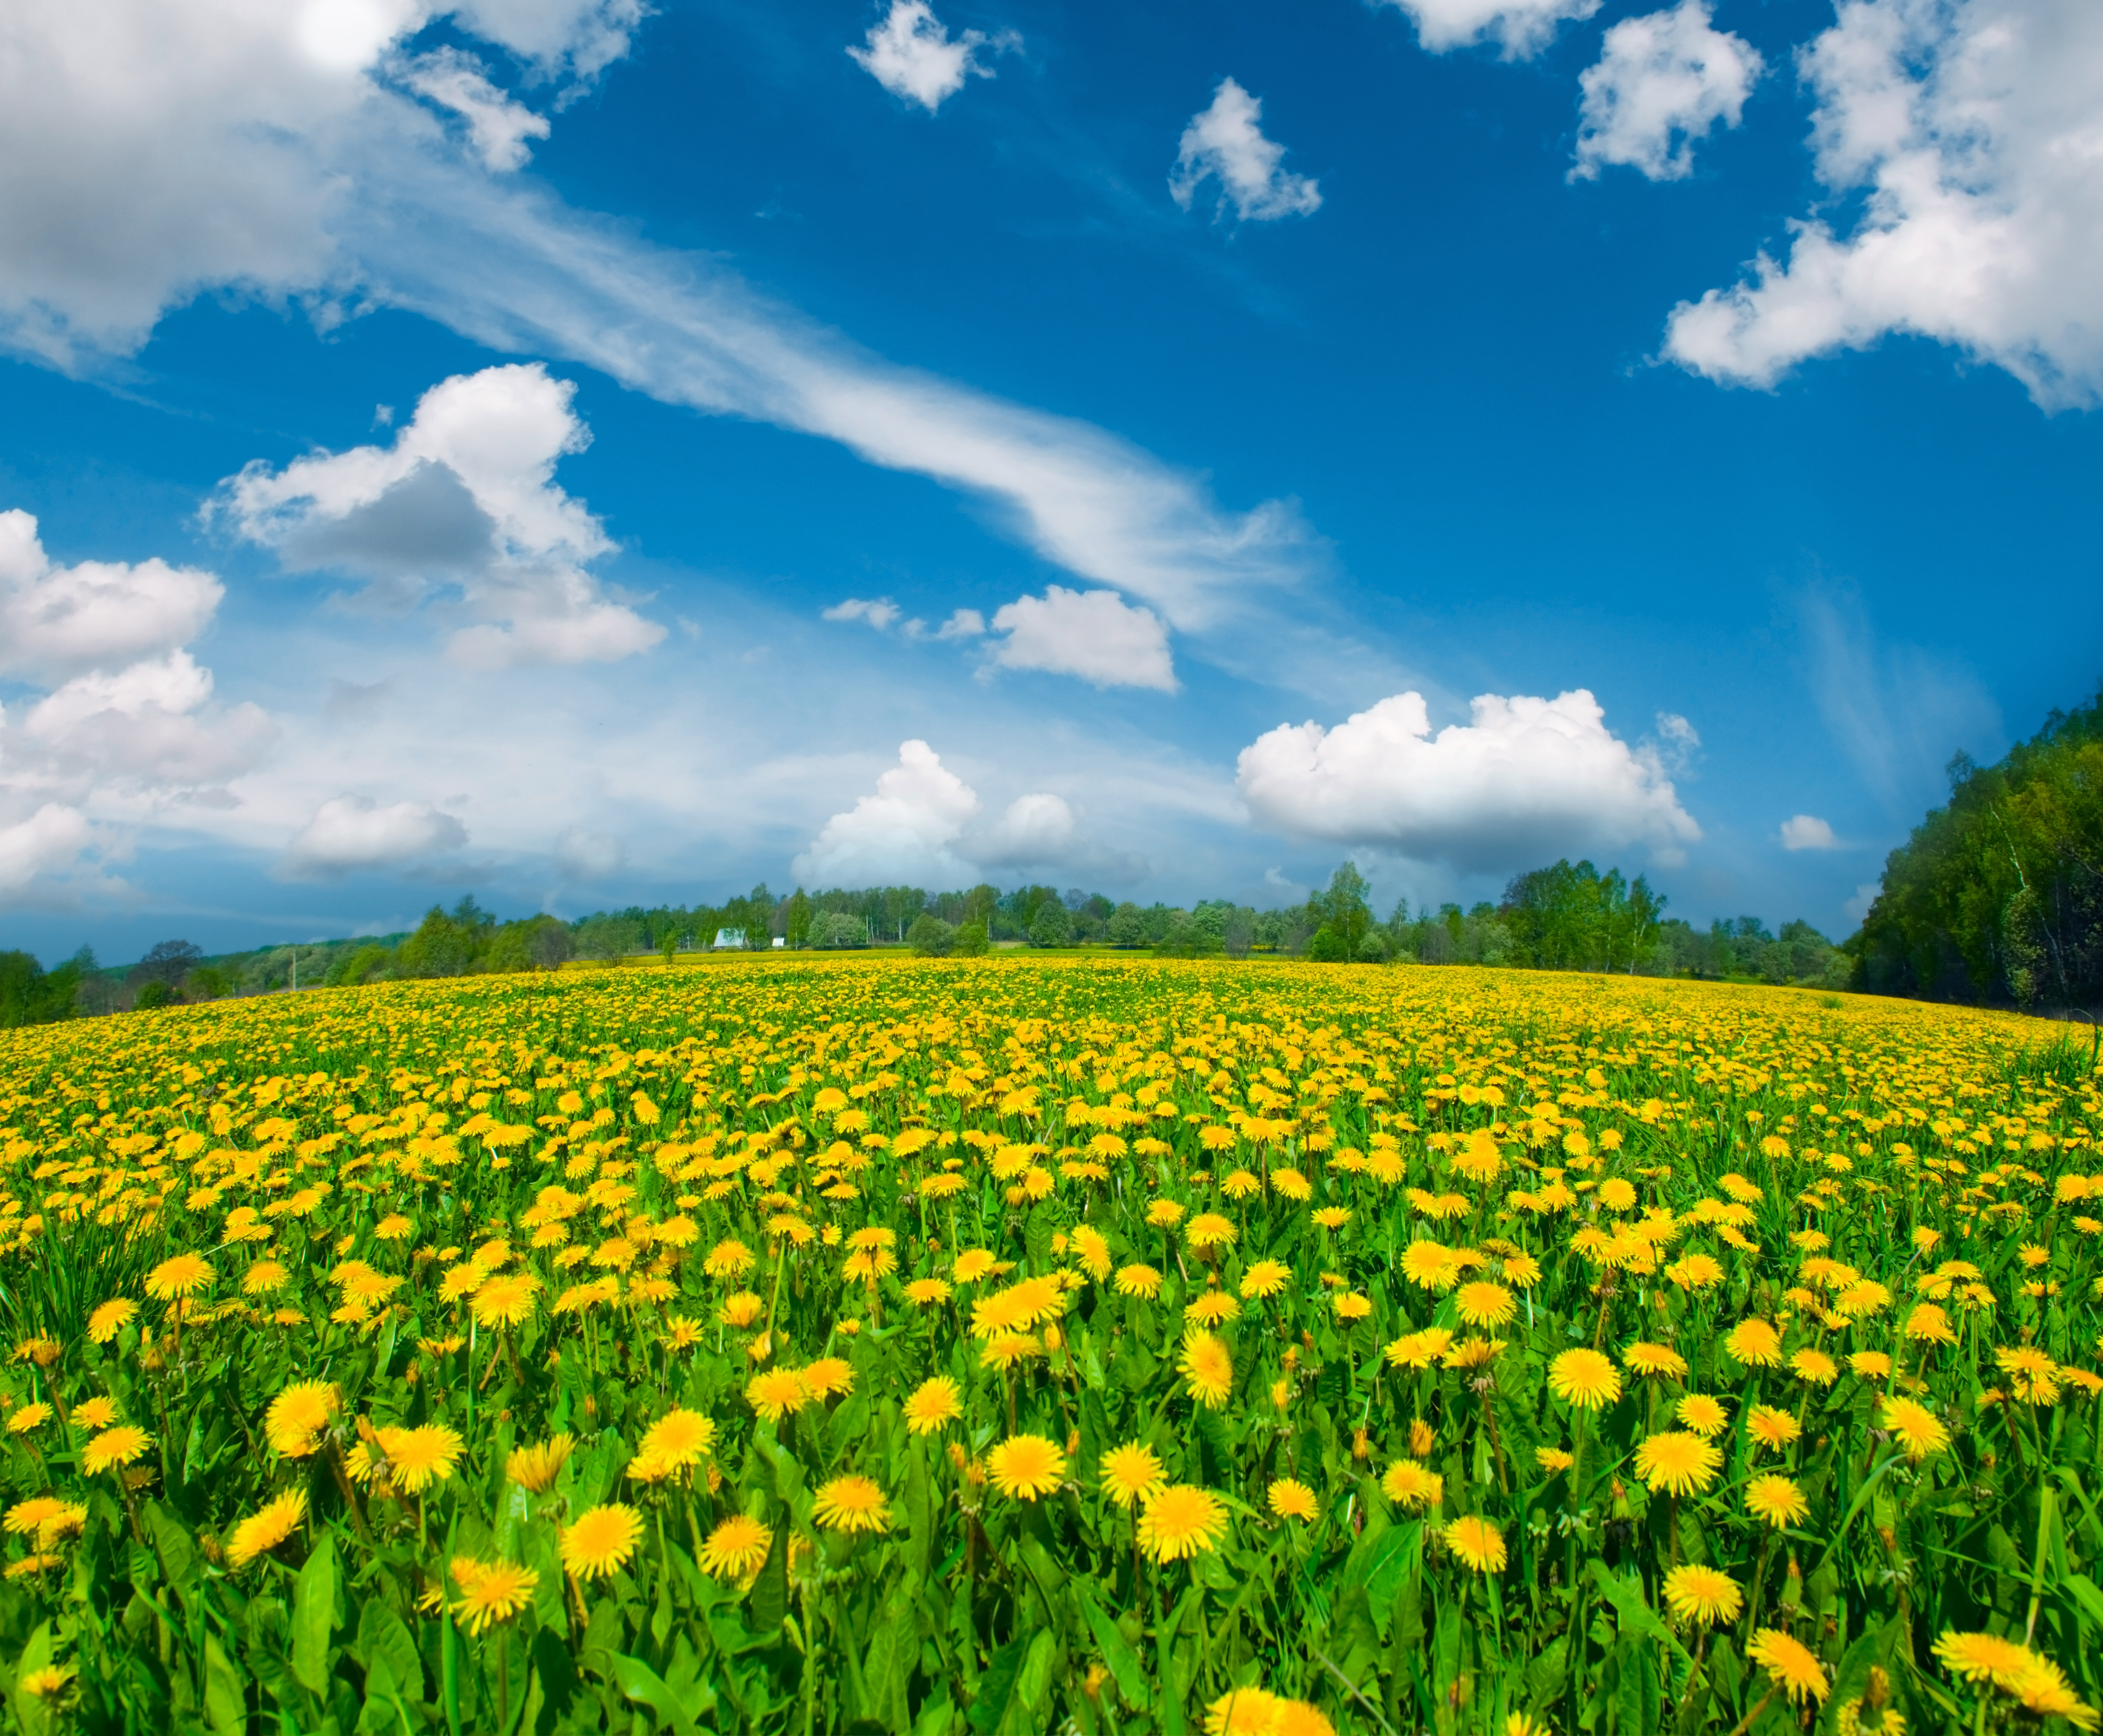 Summer Meadow with Dandelions Background.